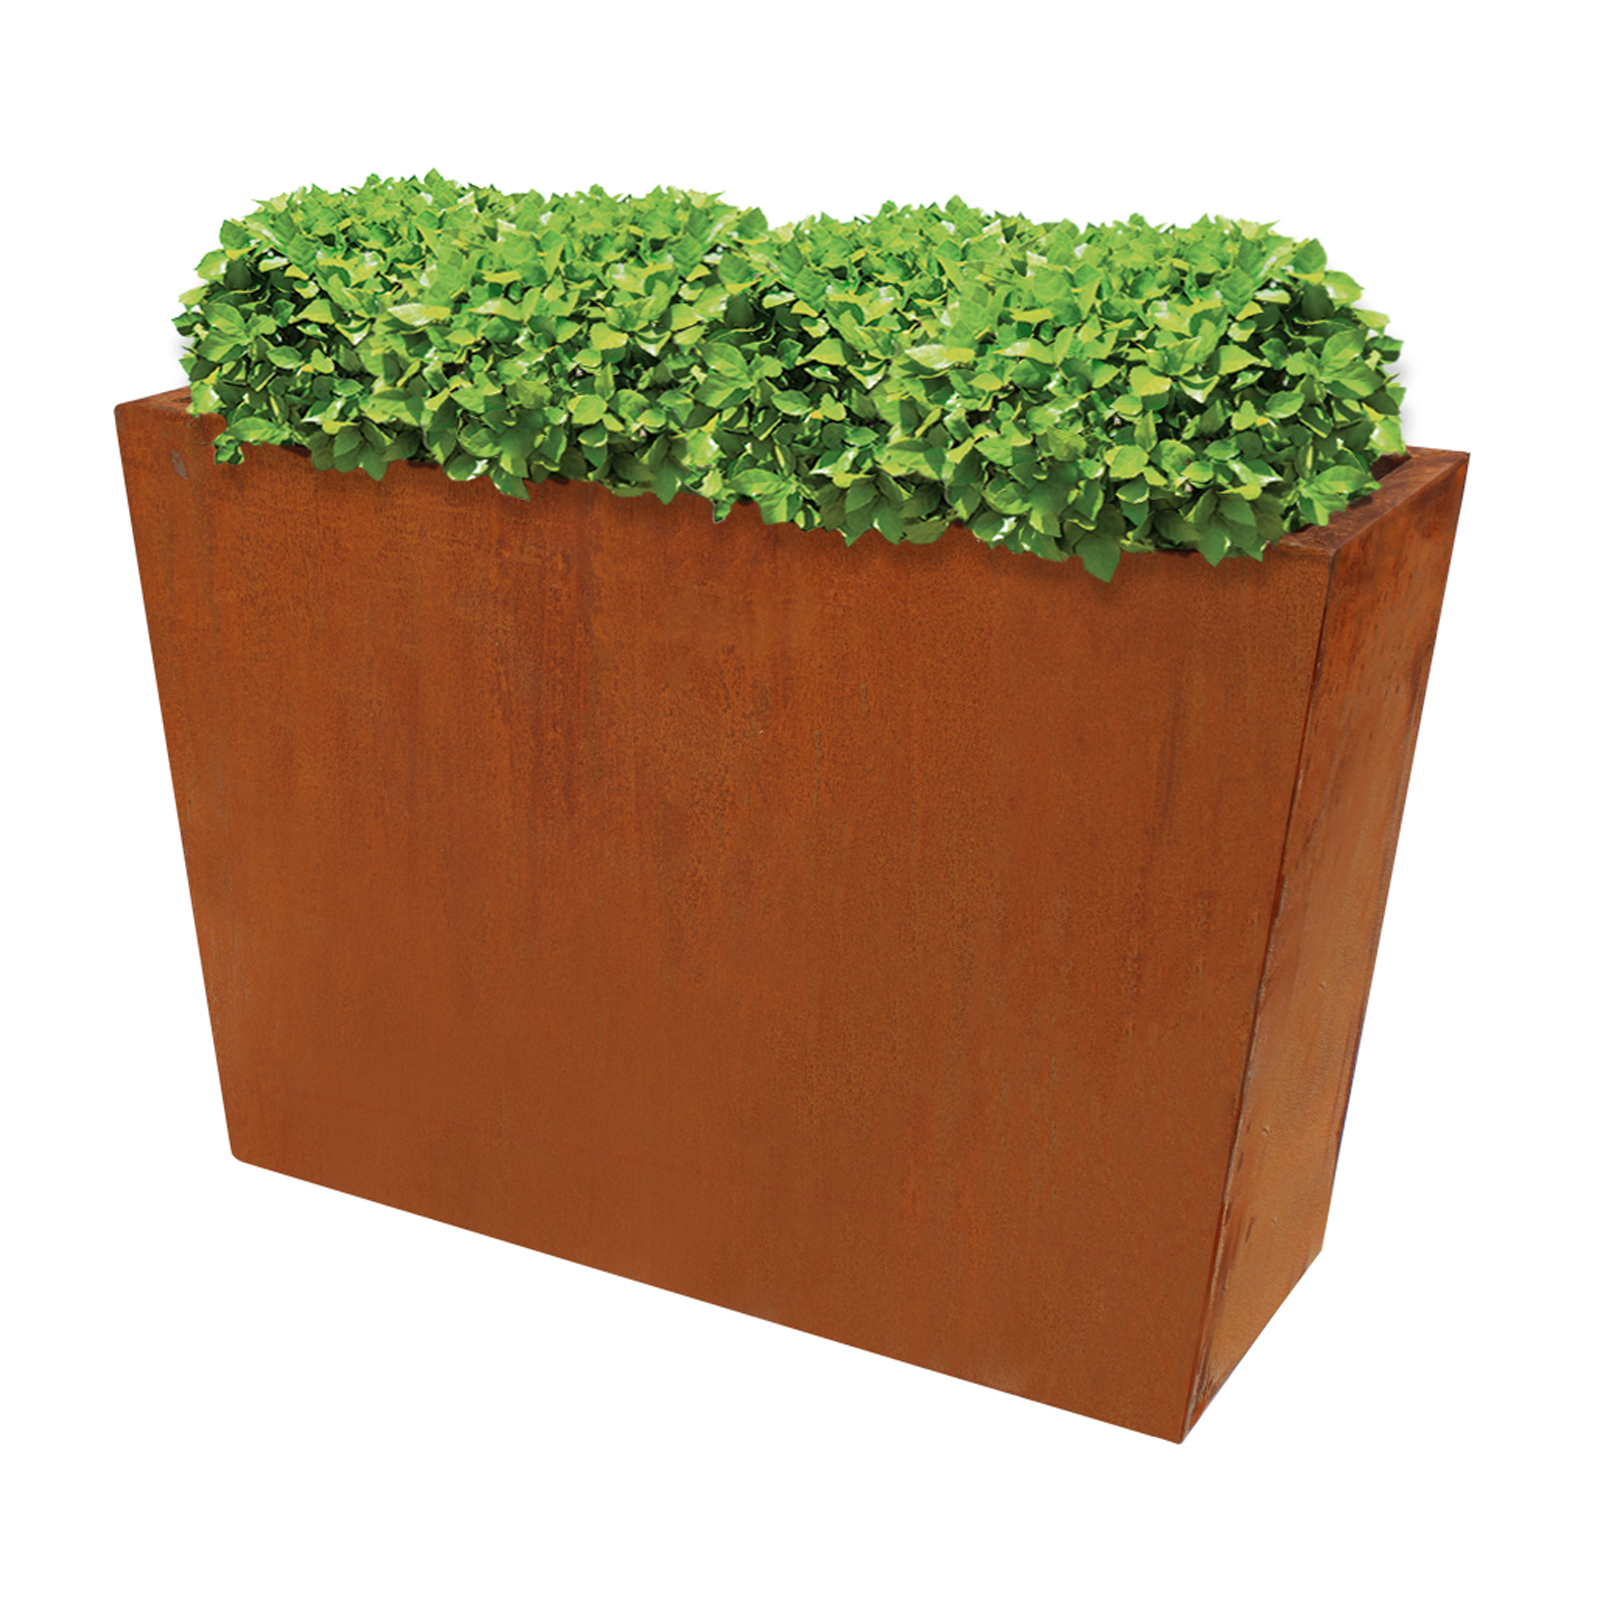 18488 cafe planter with plants 600x190x400